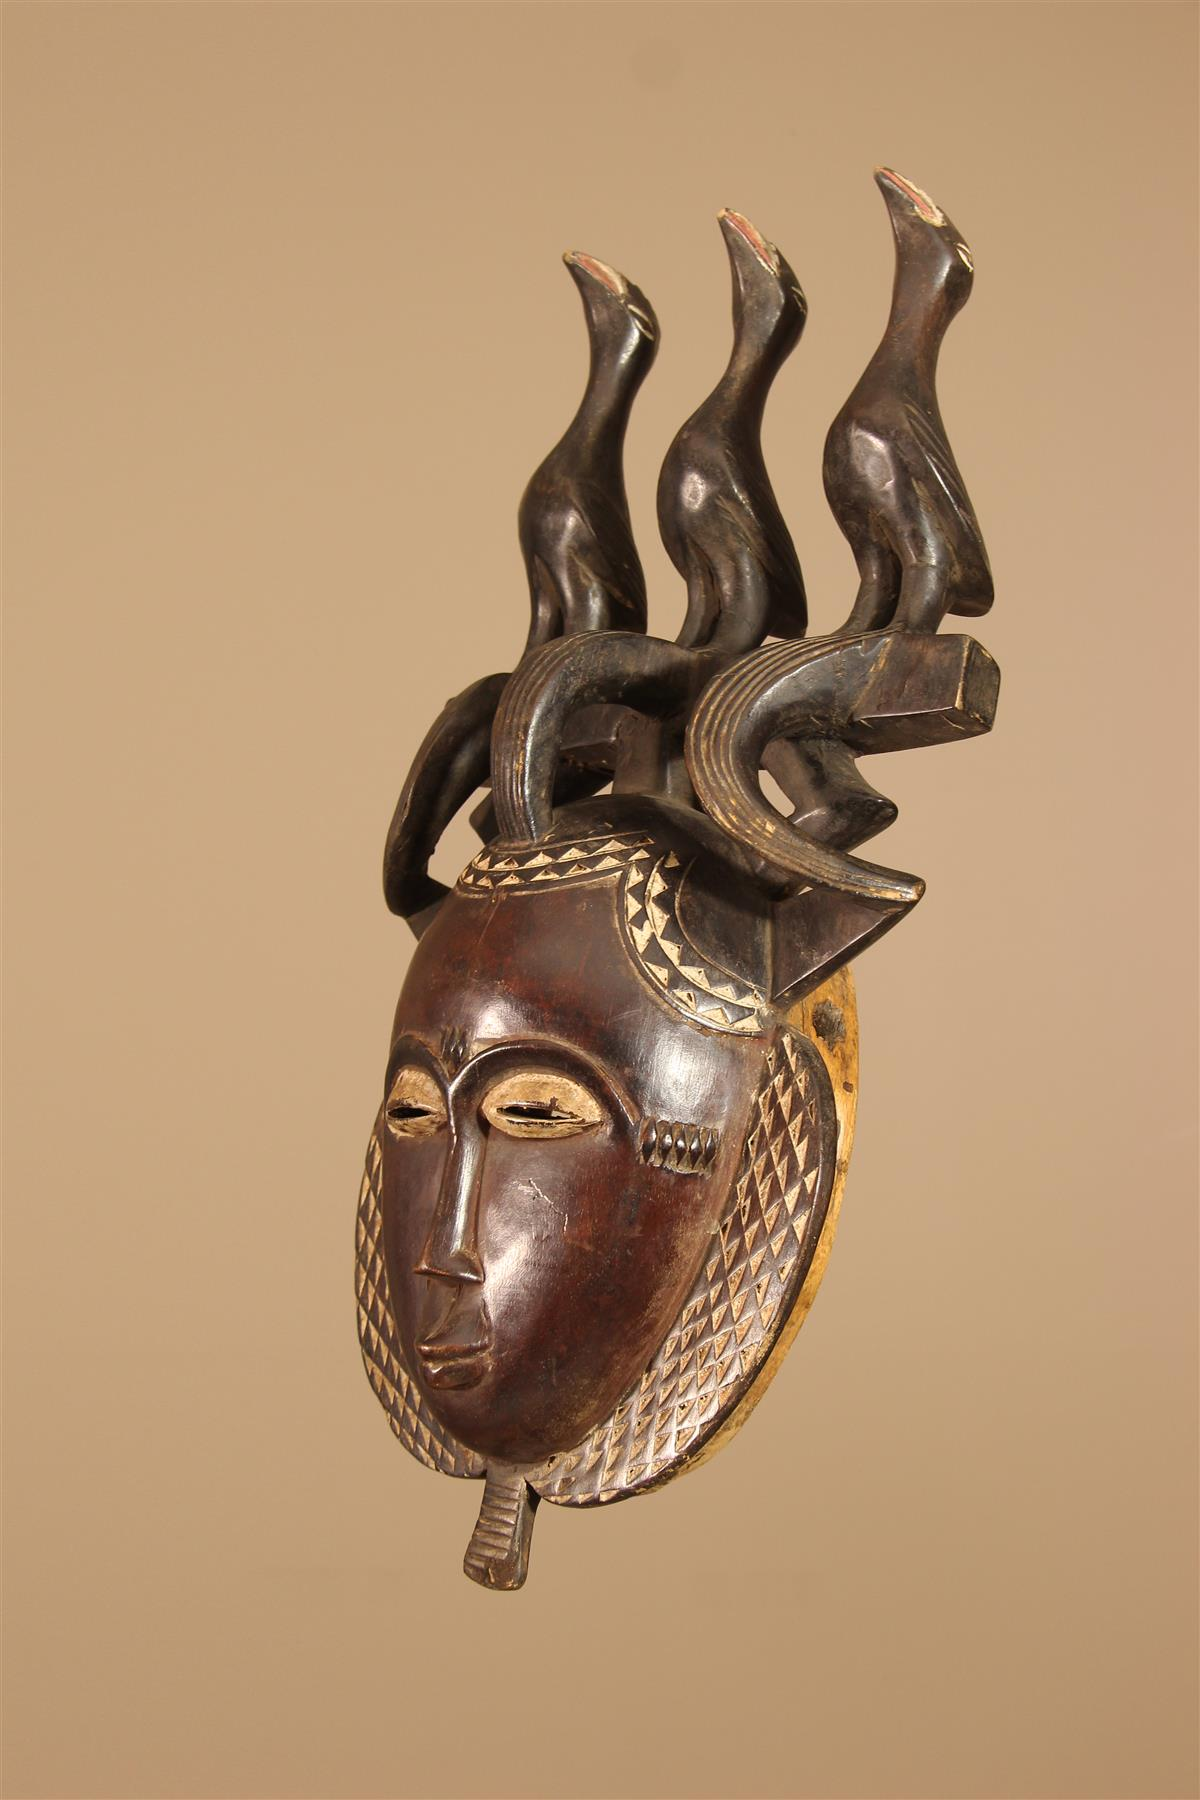 Masque Yohoure - Déco africaine - Art africain traditionnel